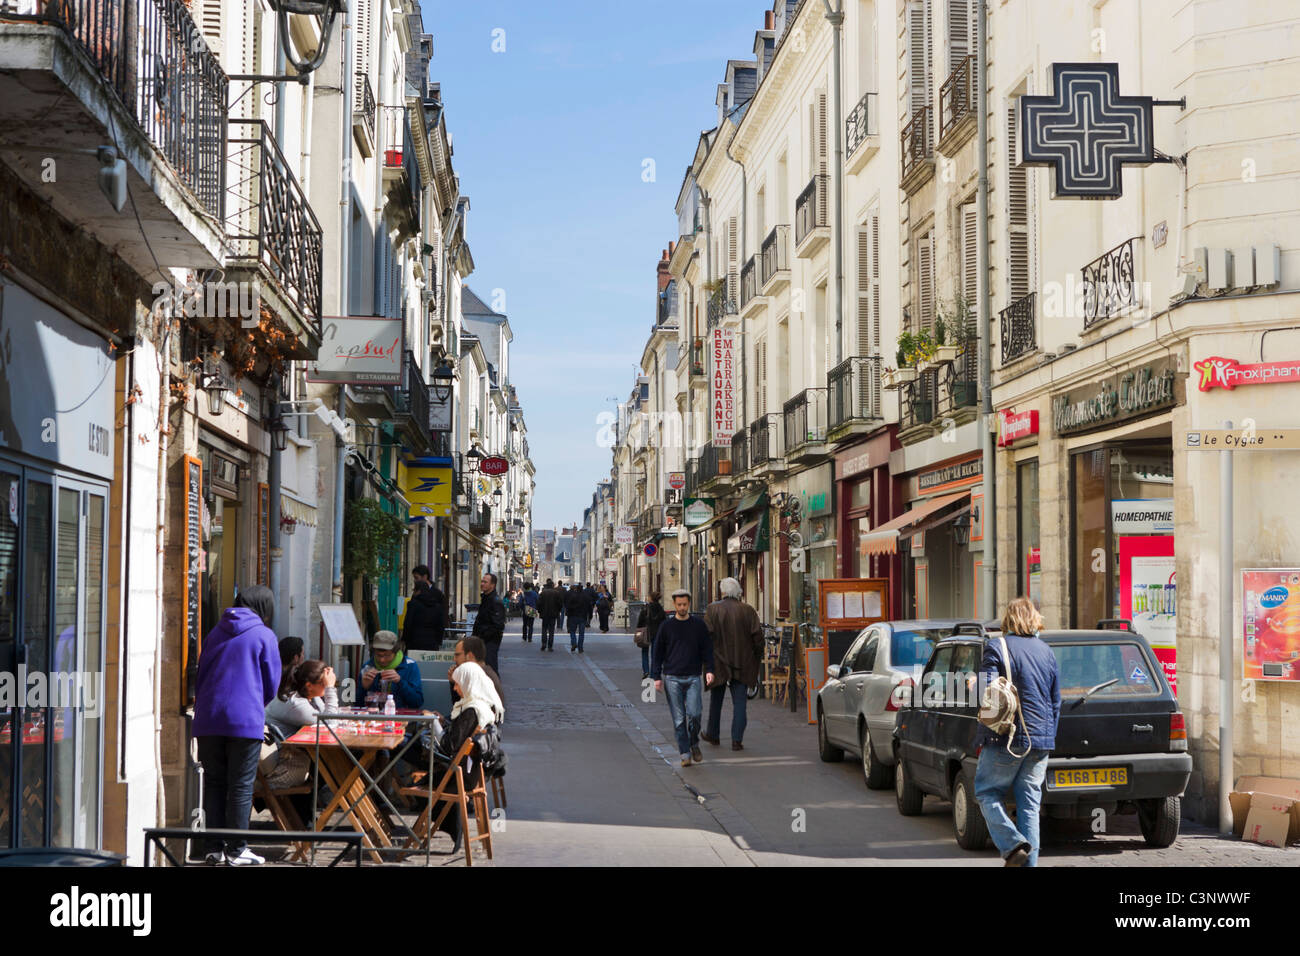 Shops and cafes on Rue Colbert in the centre of the city, Tours, Indre et Loire, France - Stock Image